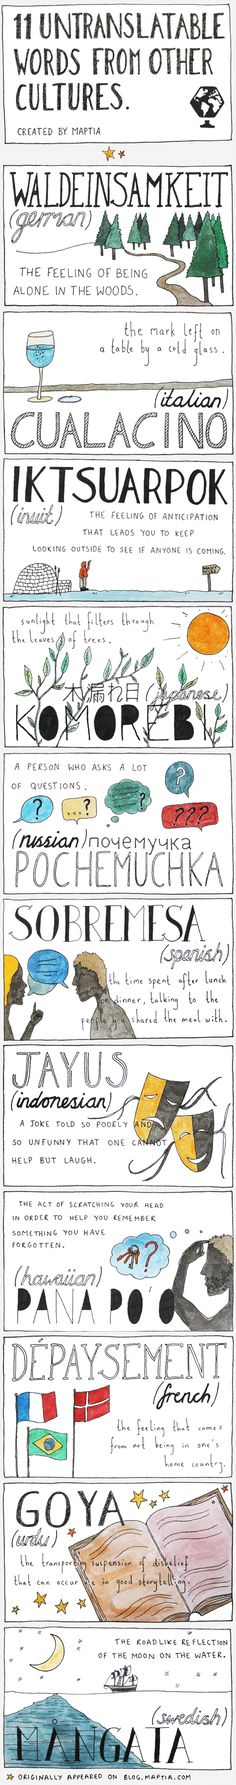 11 untranslatable words